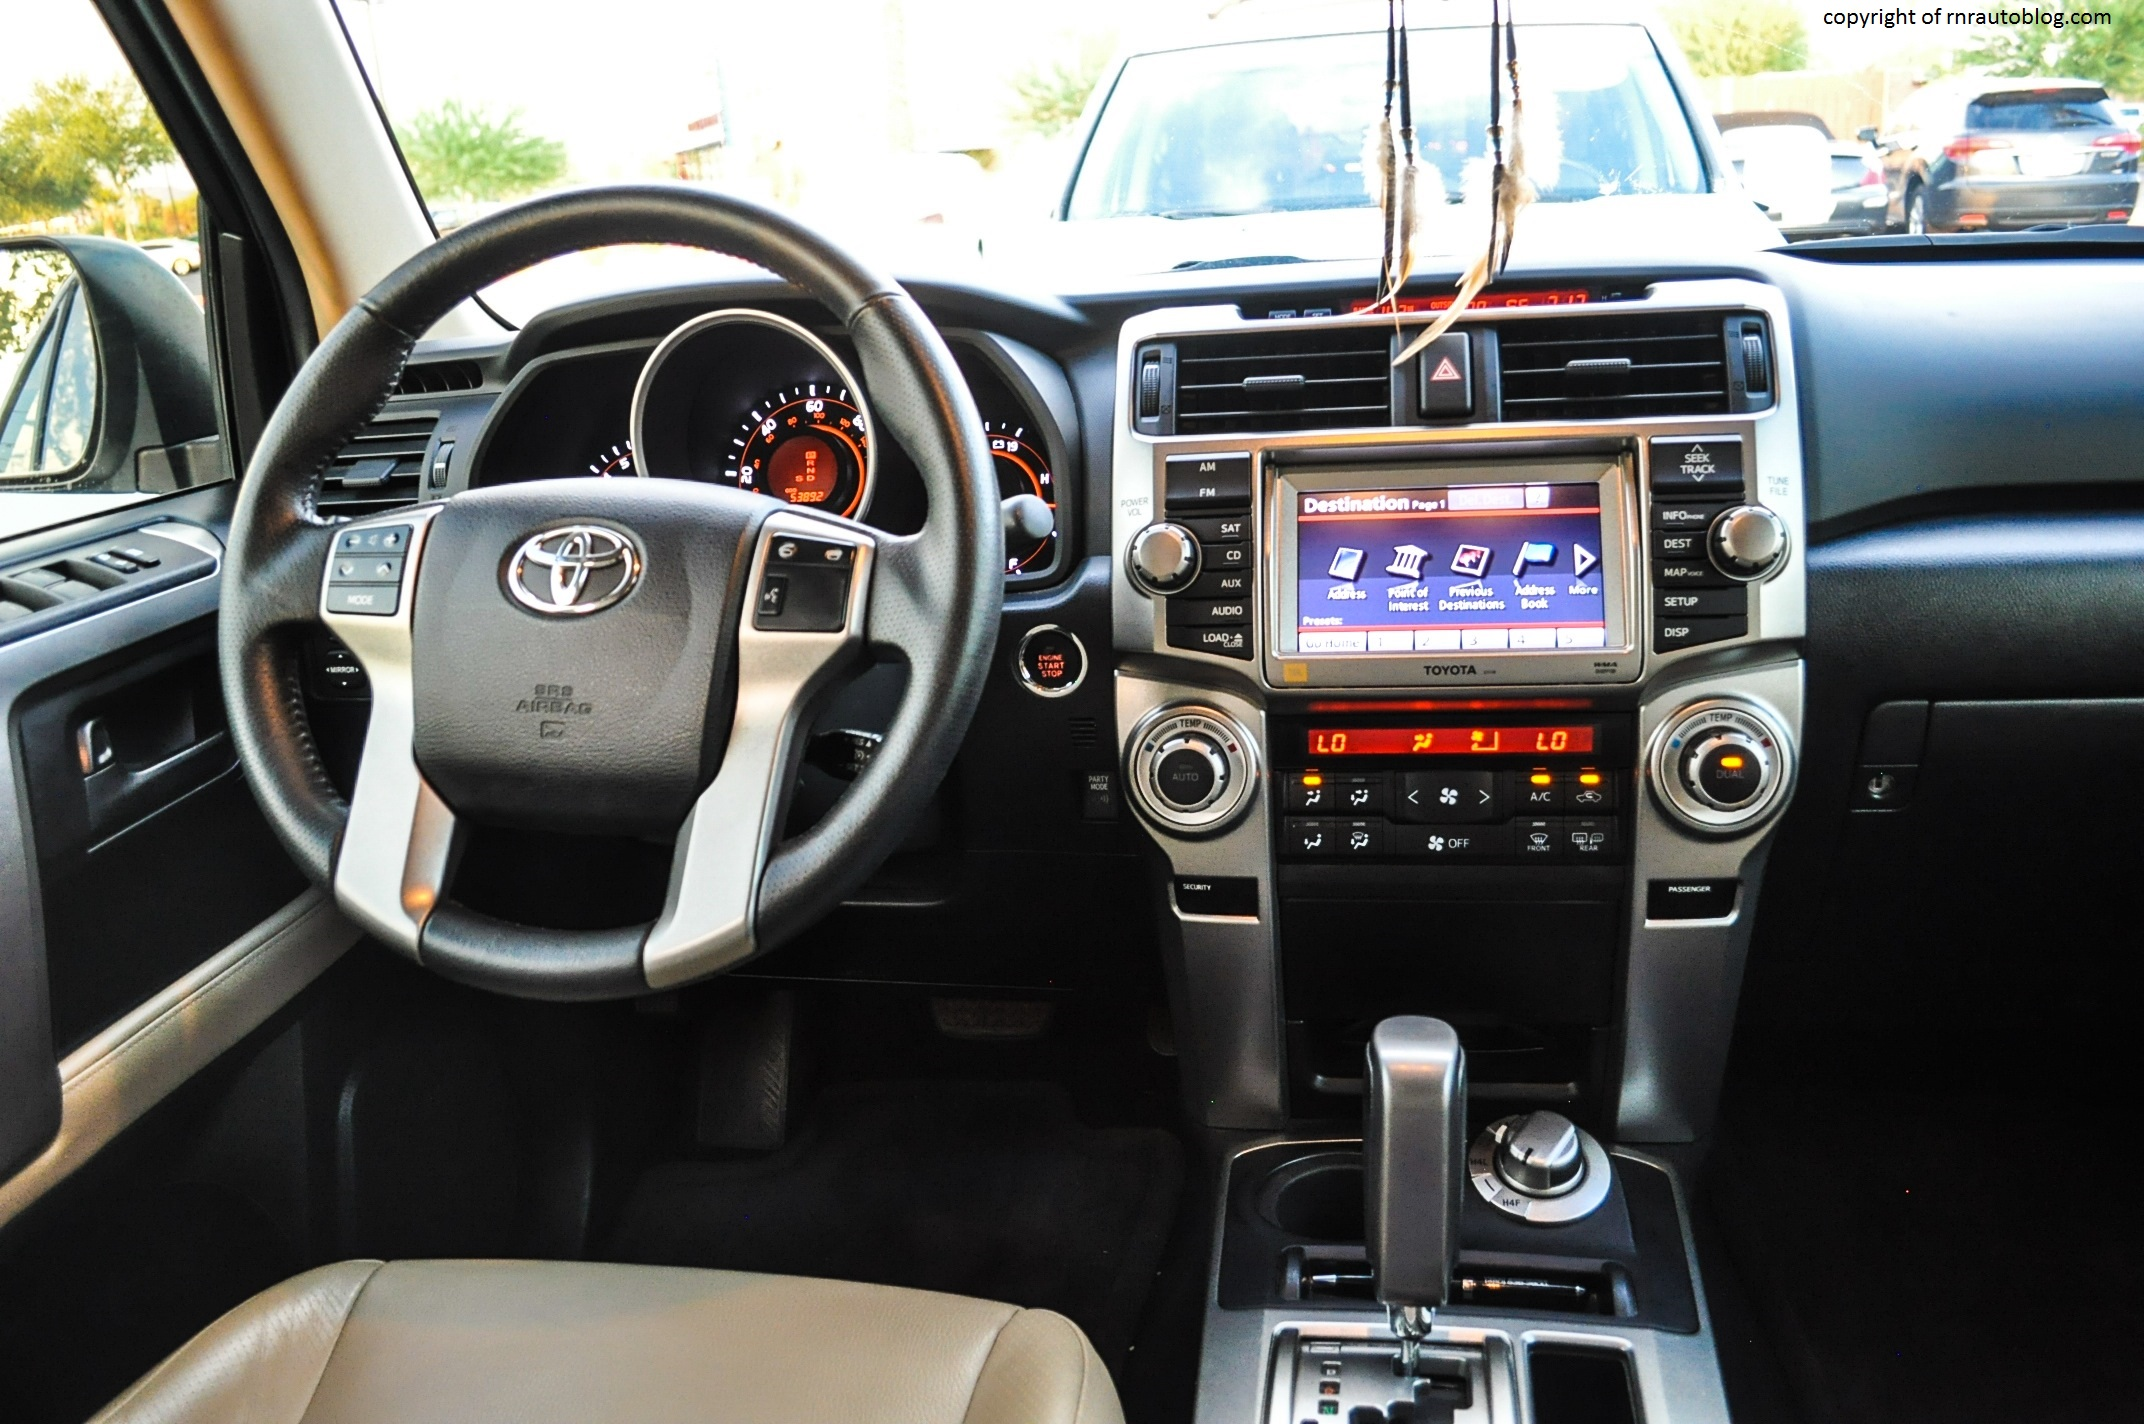 toyota 4 runner 2015 interior photos autos post. Black Bedroom Furniture Sets. Home Design Ideas